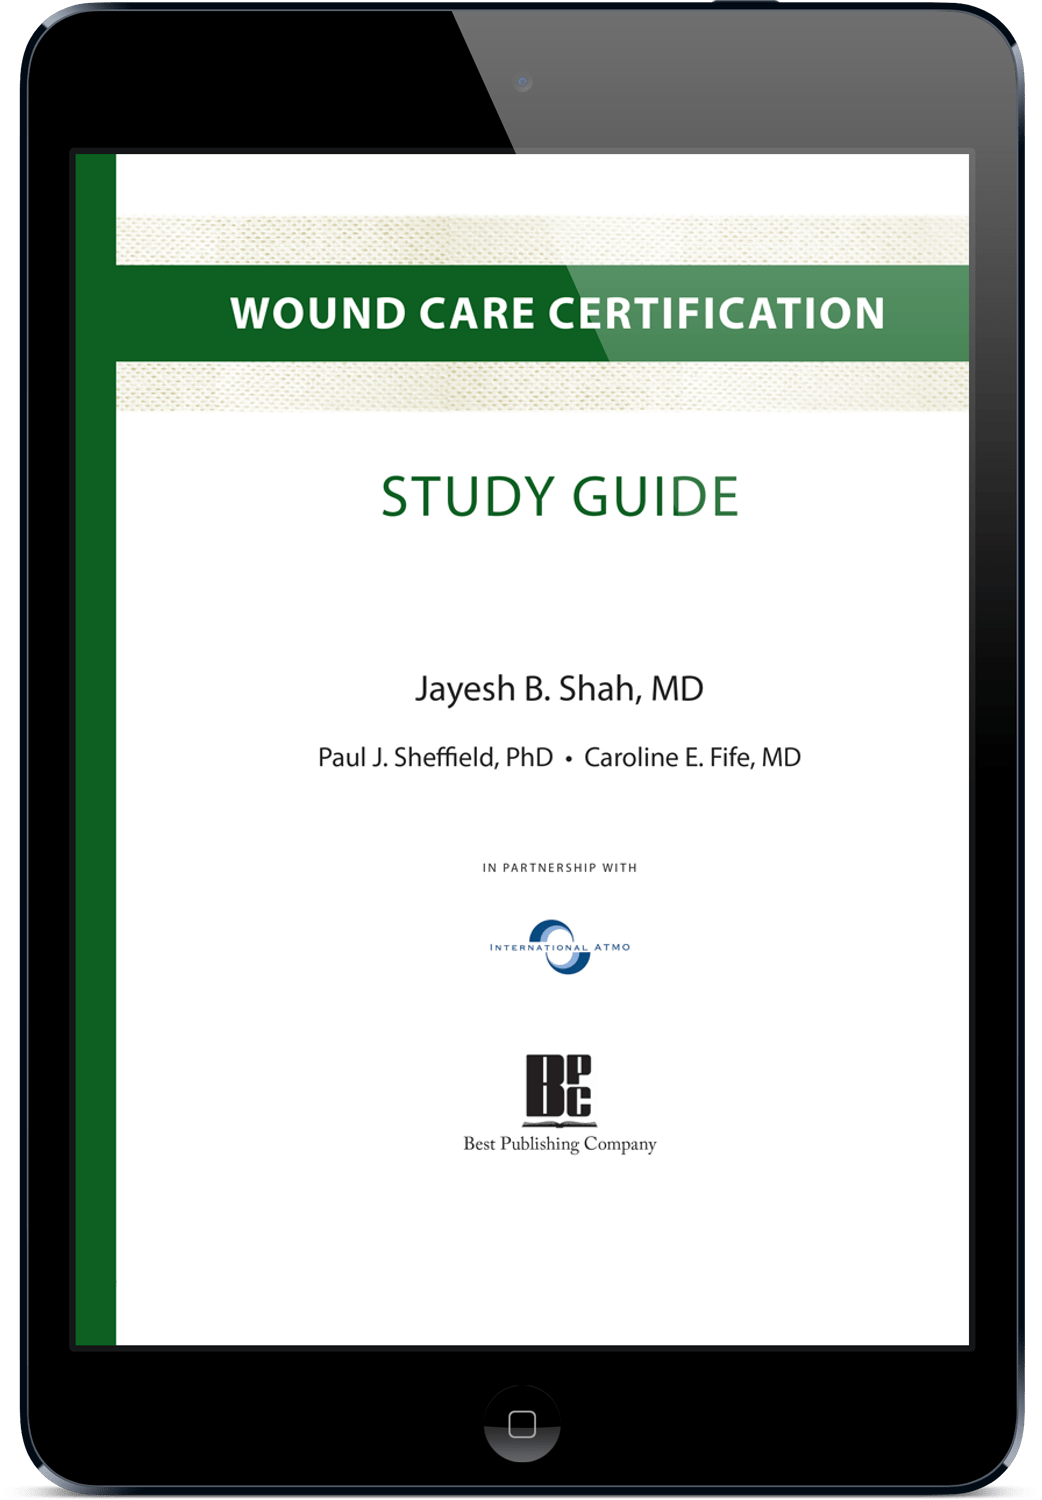 Best Publishing Company Ebook Wound Care Certification Study Guide